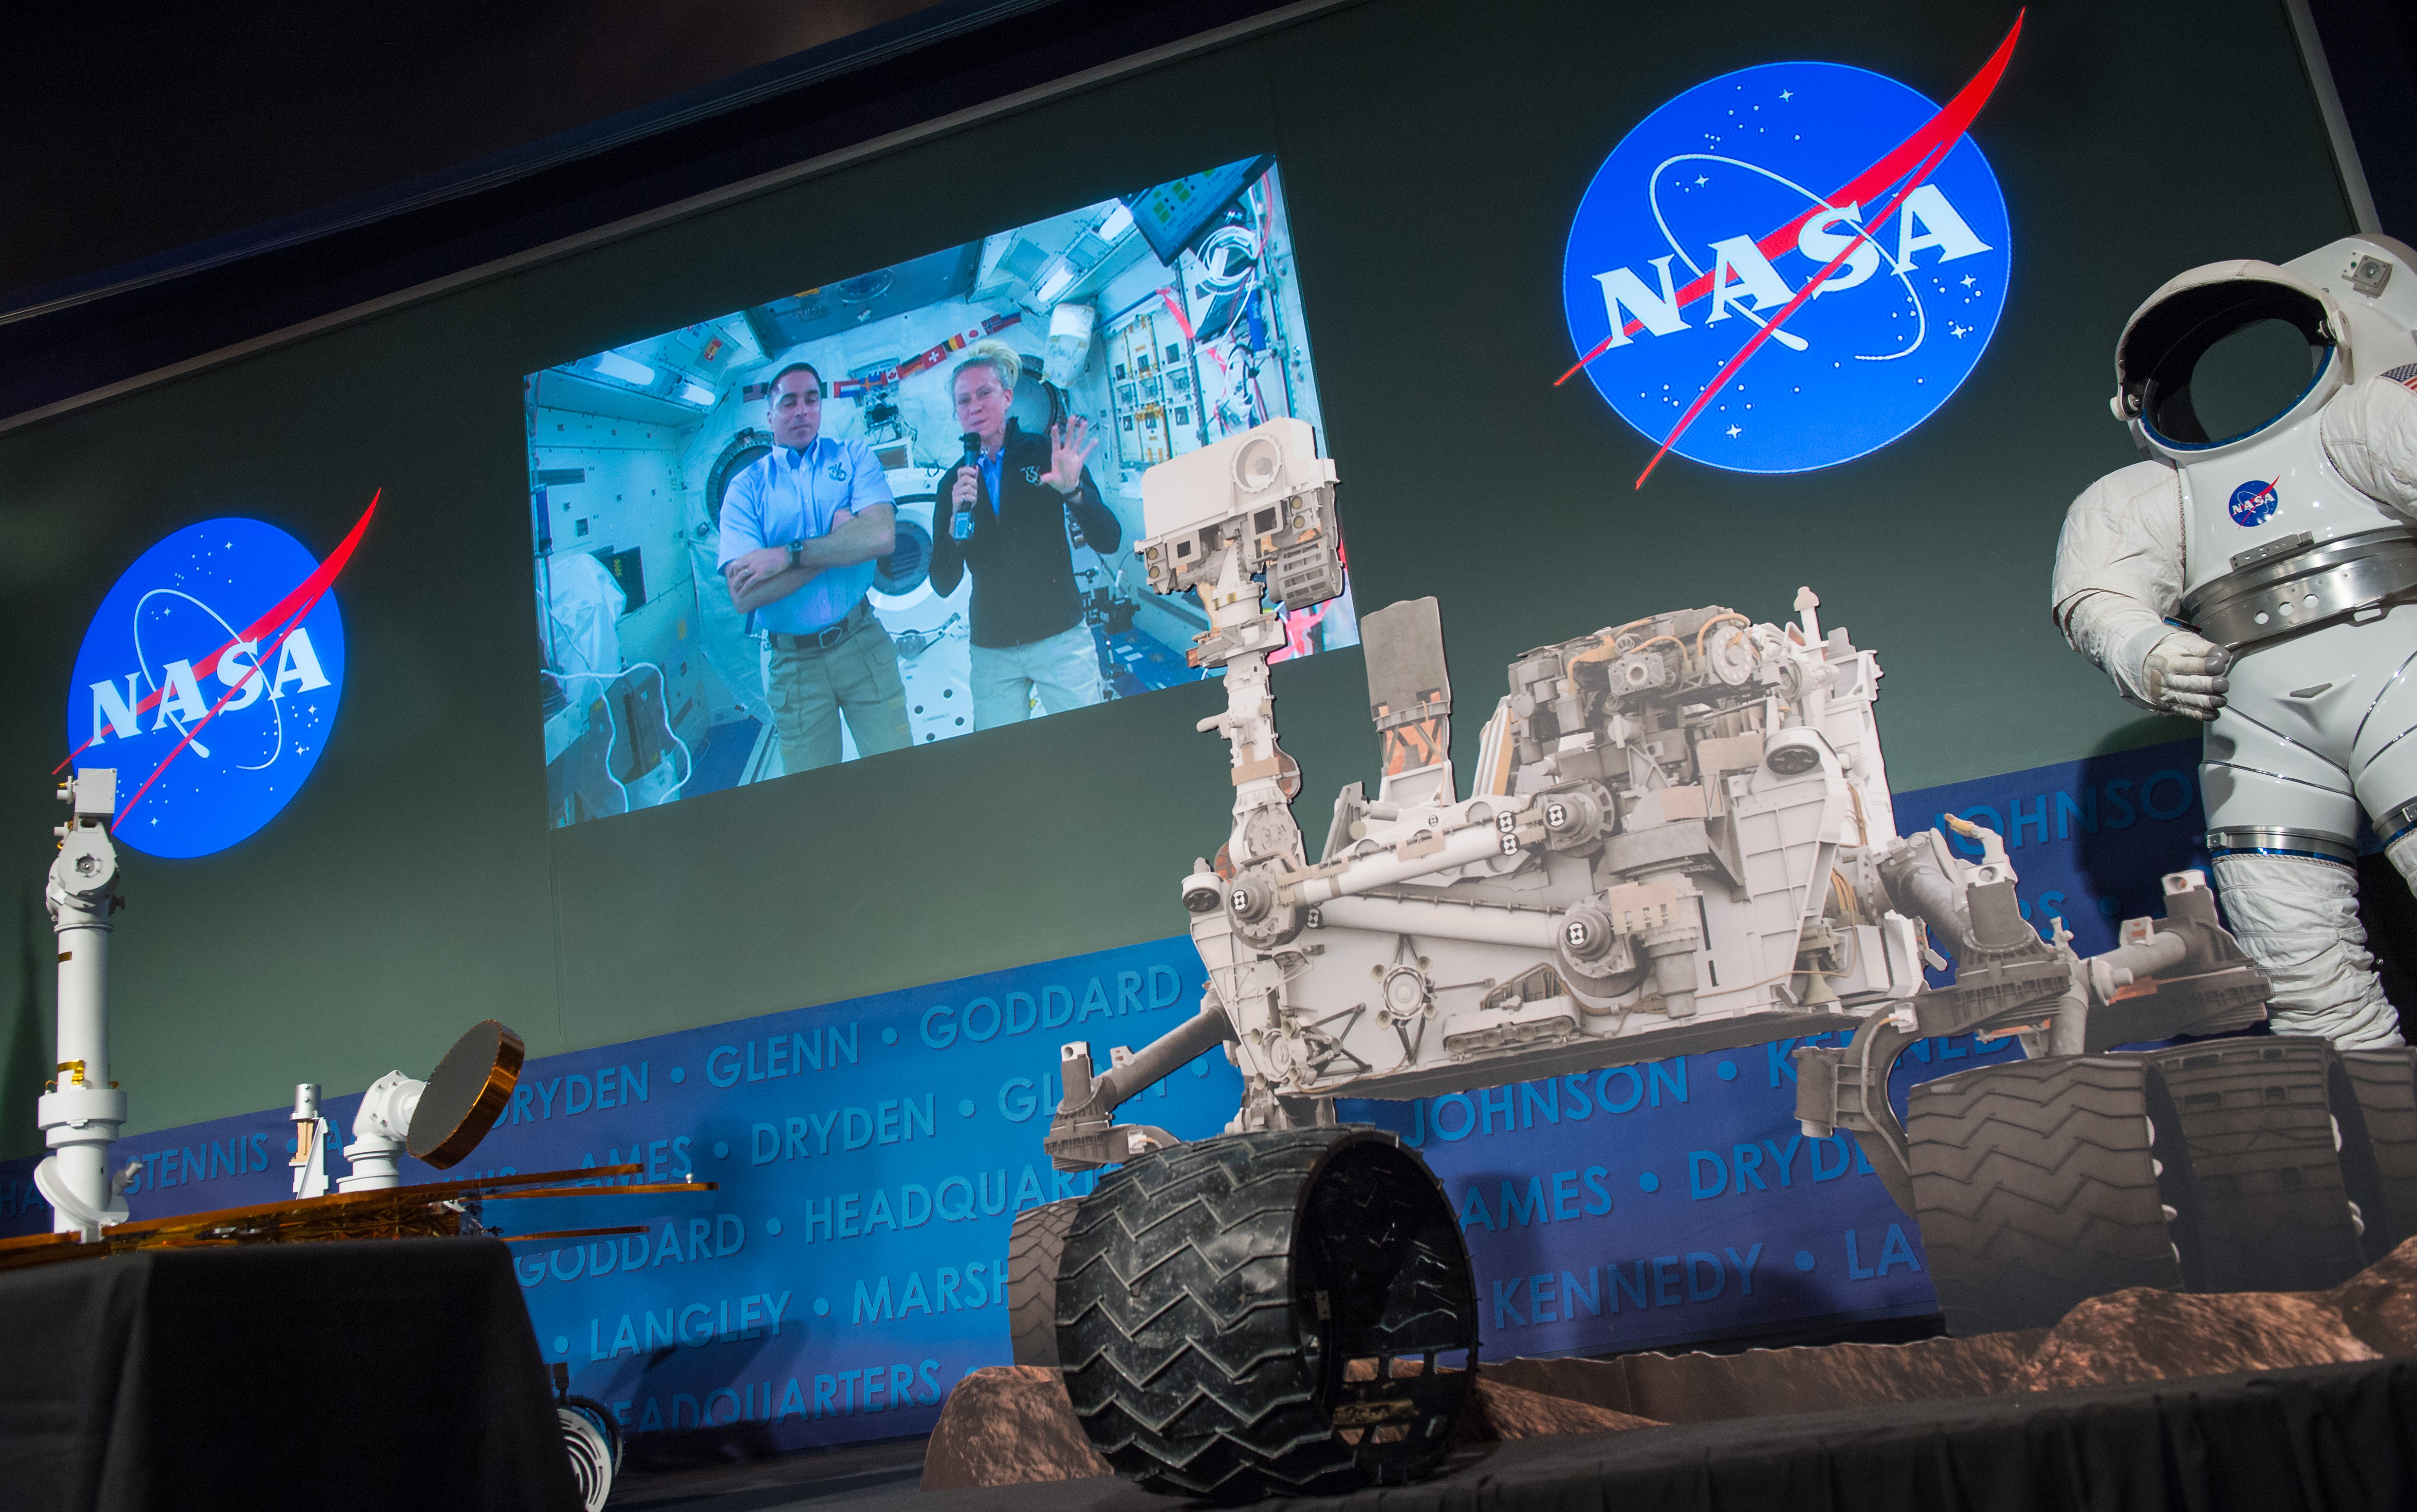 Astronaut Nyberg Celebrates at Curiosity First Anniversary Event